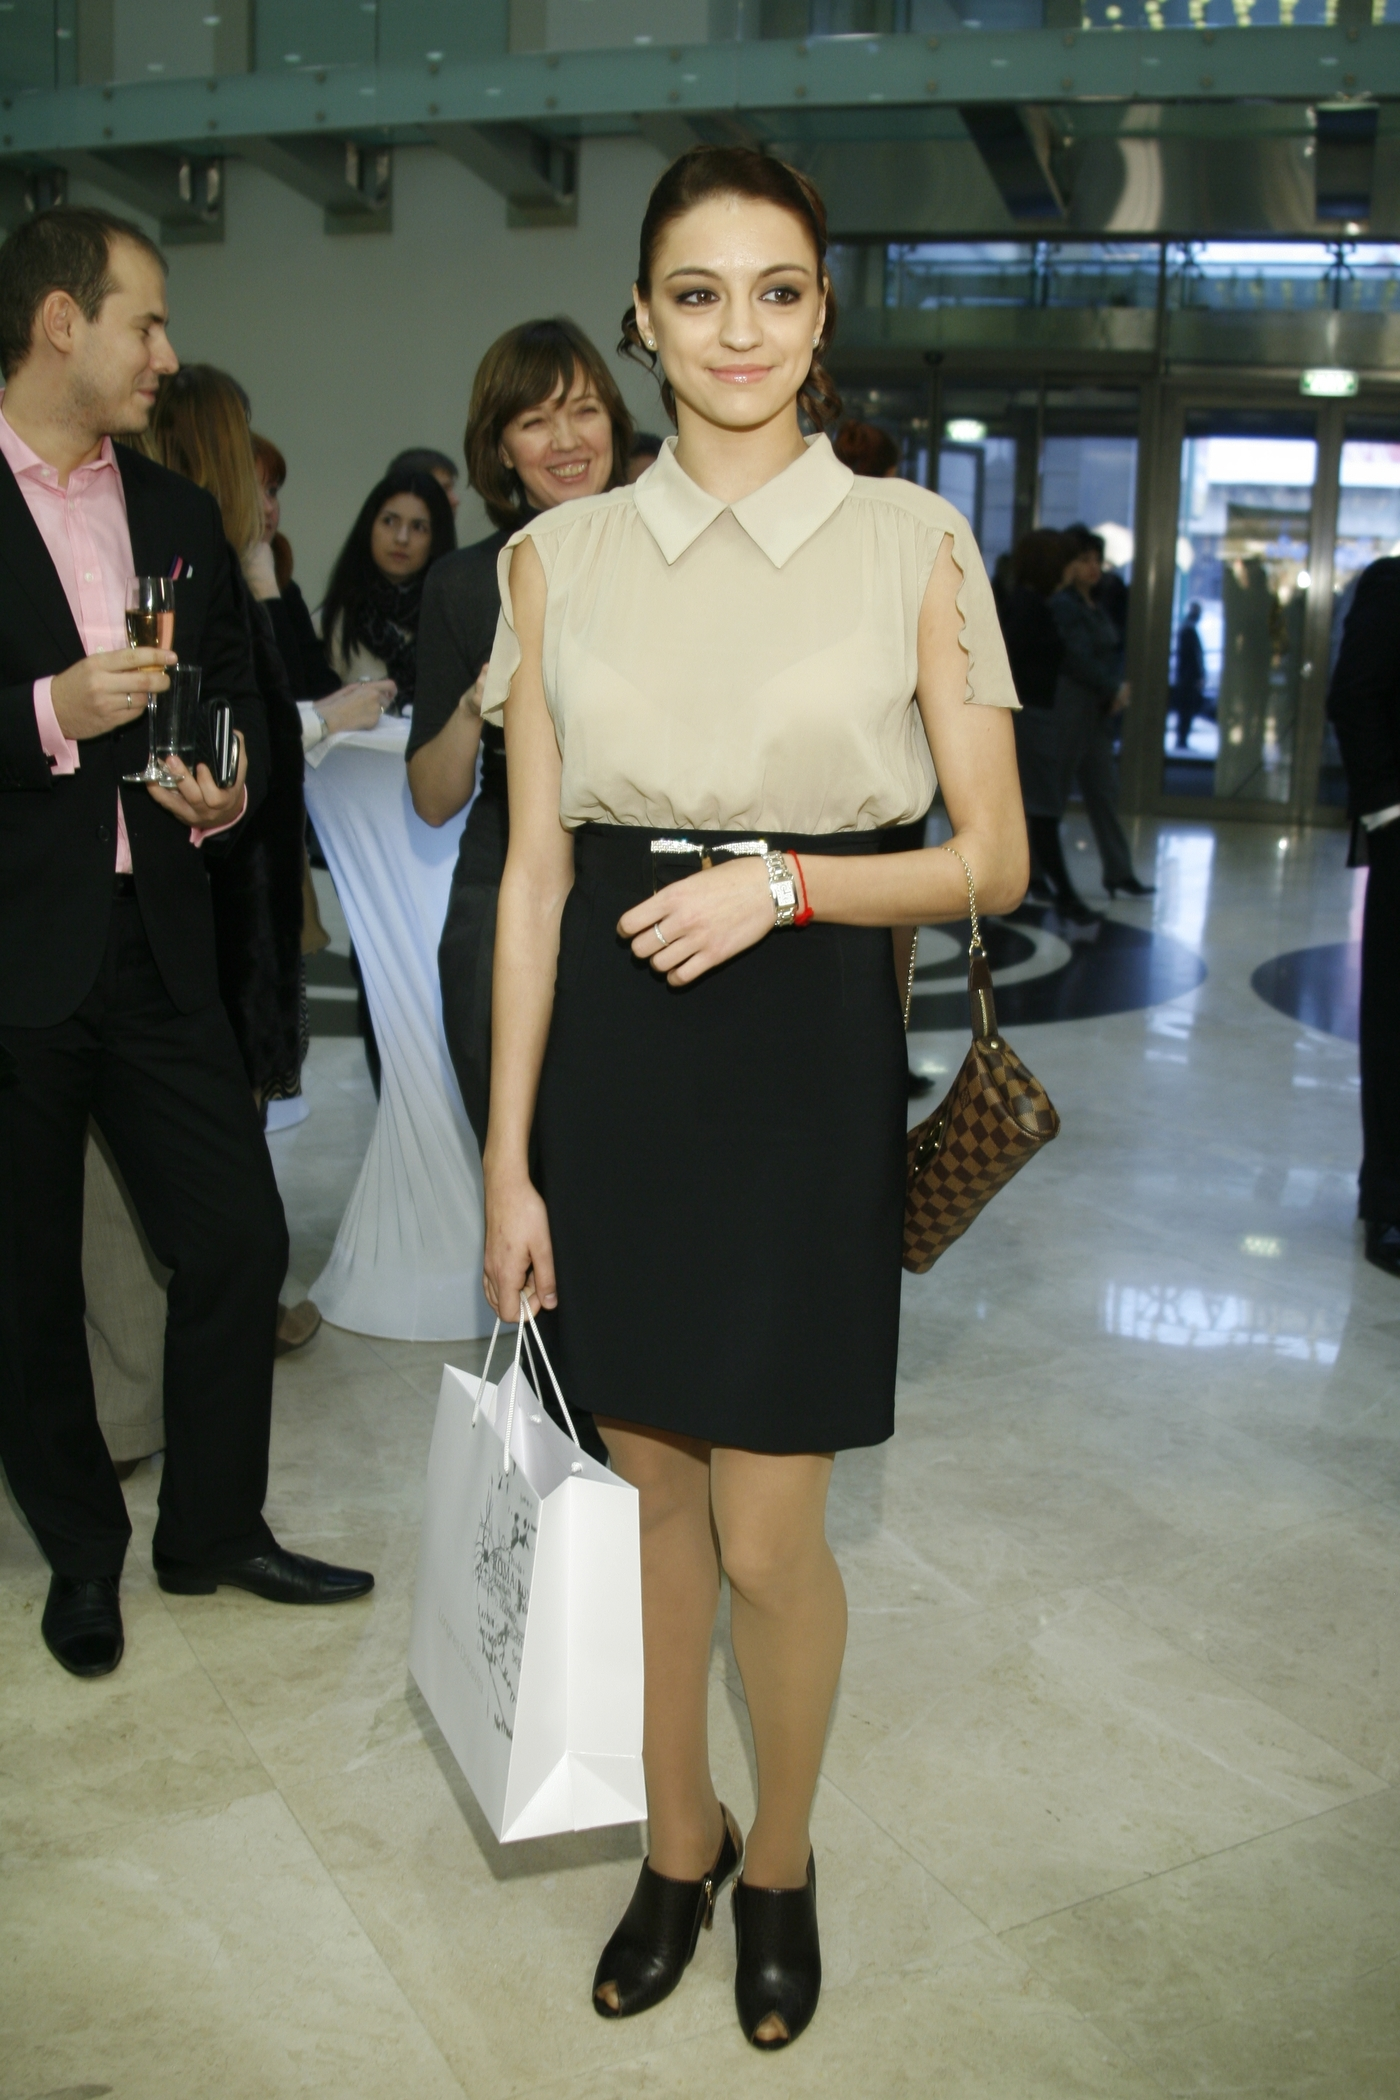 Longines Corporate Event: Longines DolceVita - New interpretation of contemporary elegance lauched in Russia 4